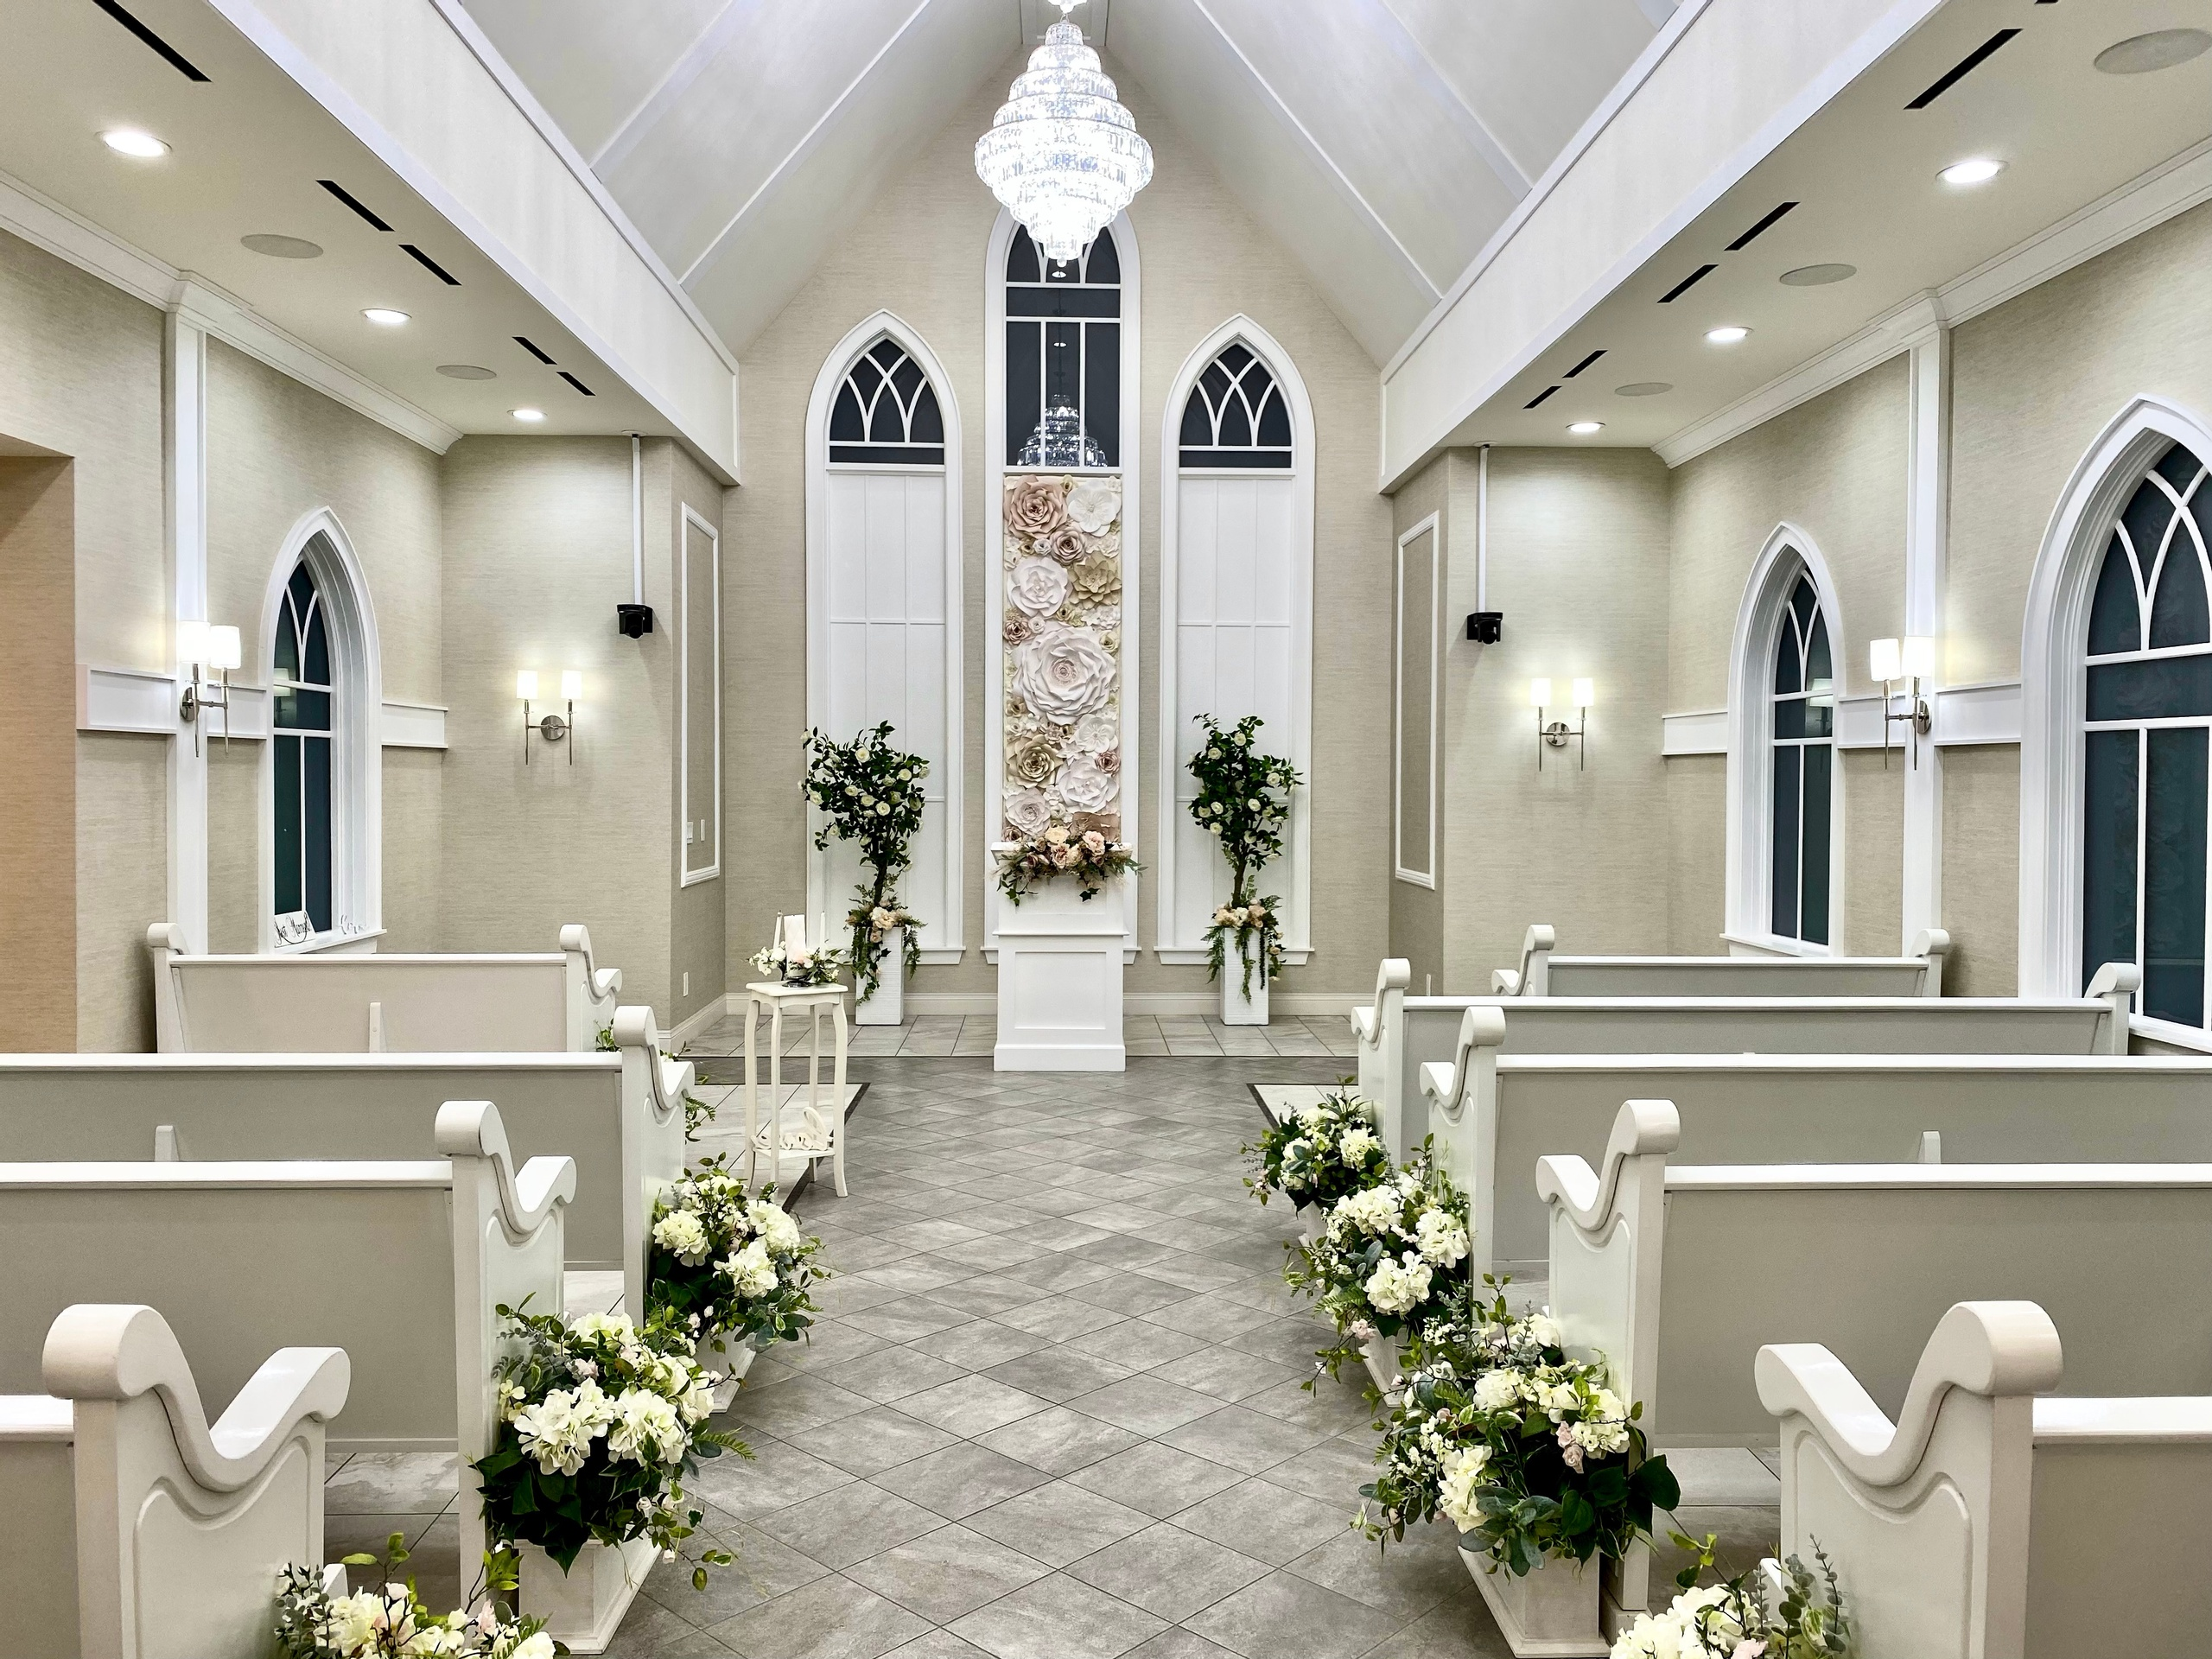 Gorgeous Bliss Las Vegas Wedding Chapel vaulted ceilings seats 50 guests with state of the art sound system newest chapel on The Strip